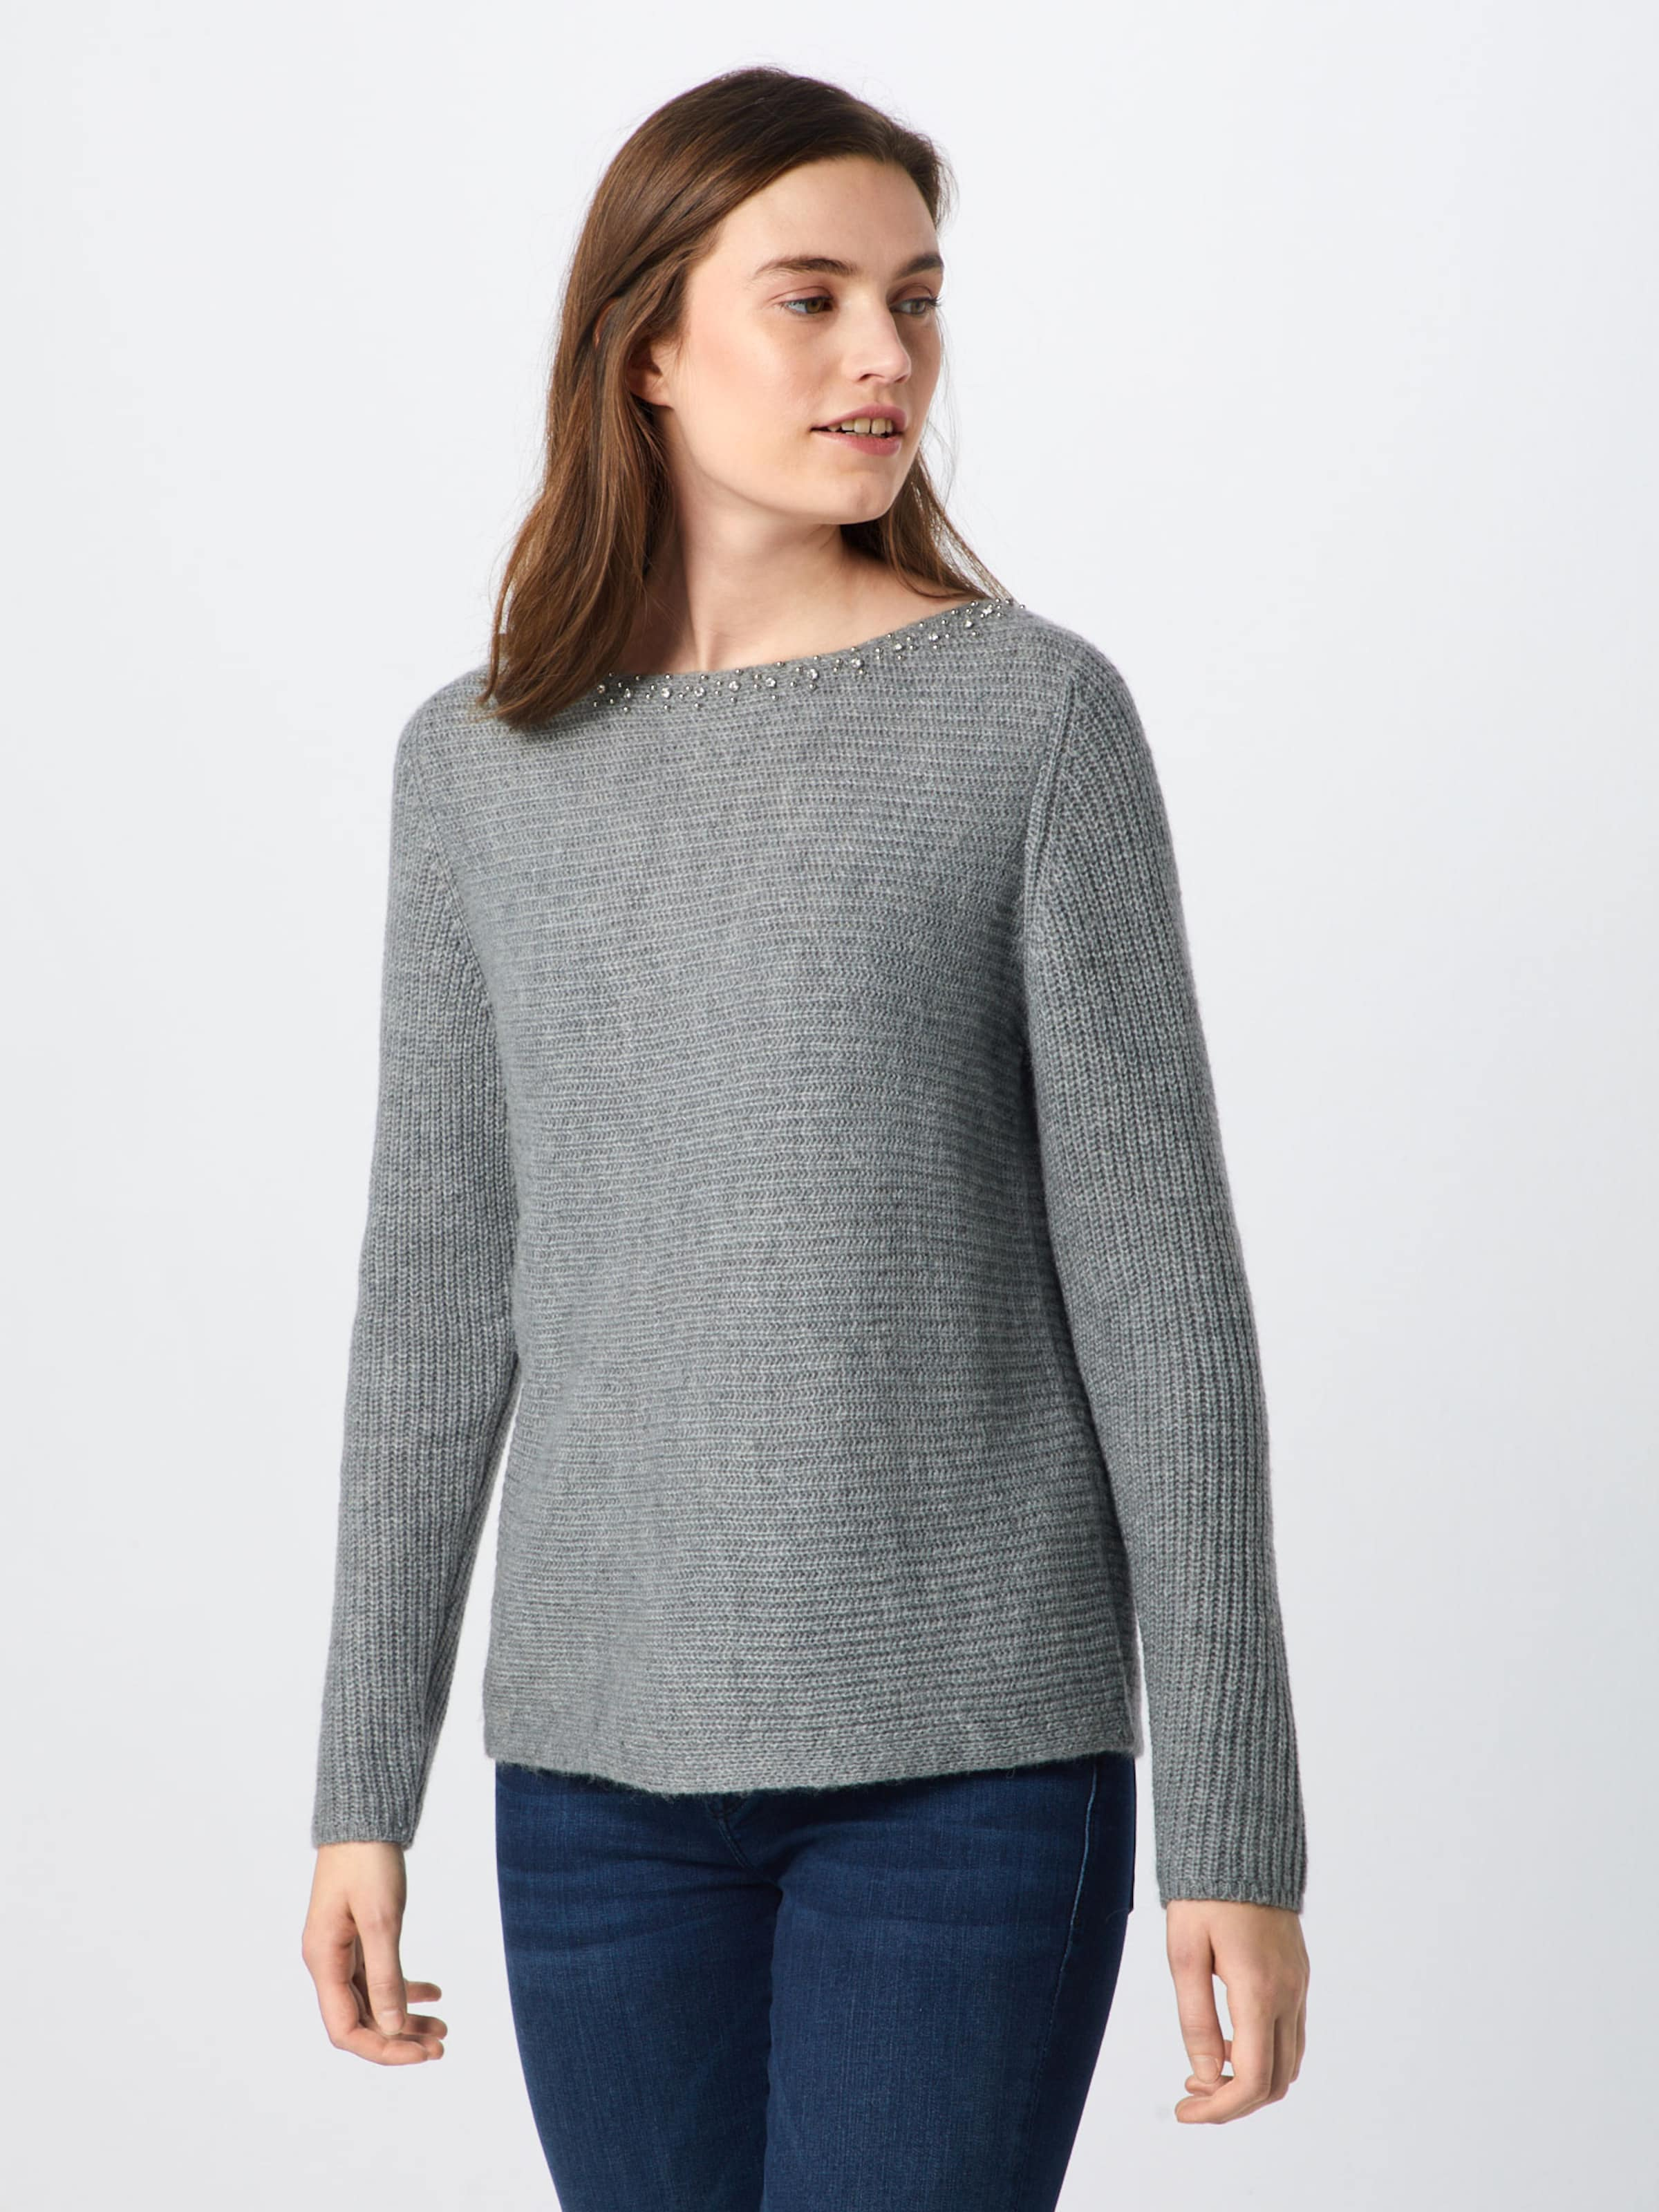 Pullover S oliver oliver Silbergrau oliver Silbergrau Pullover S S In In nv8O0wmN